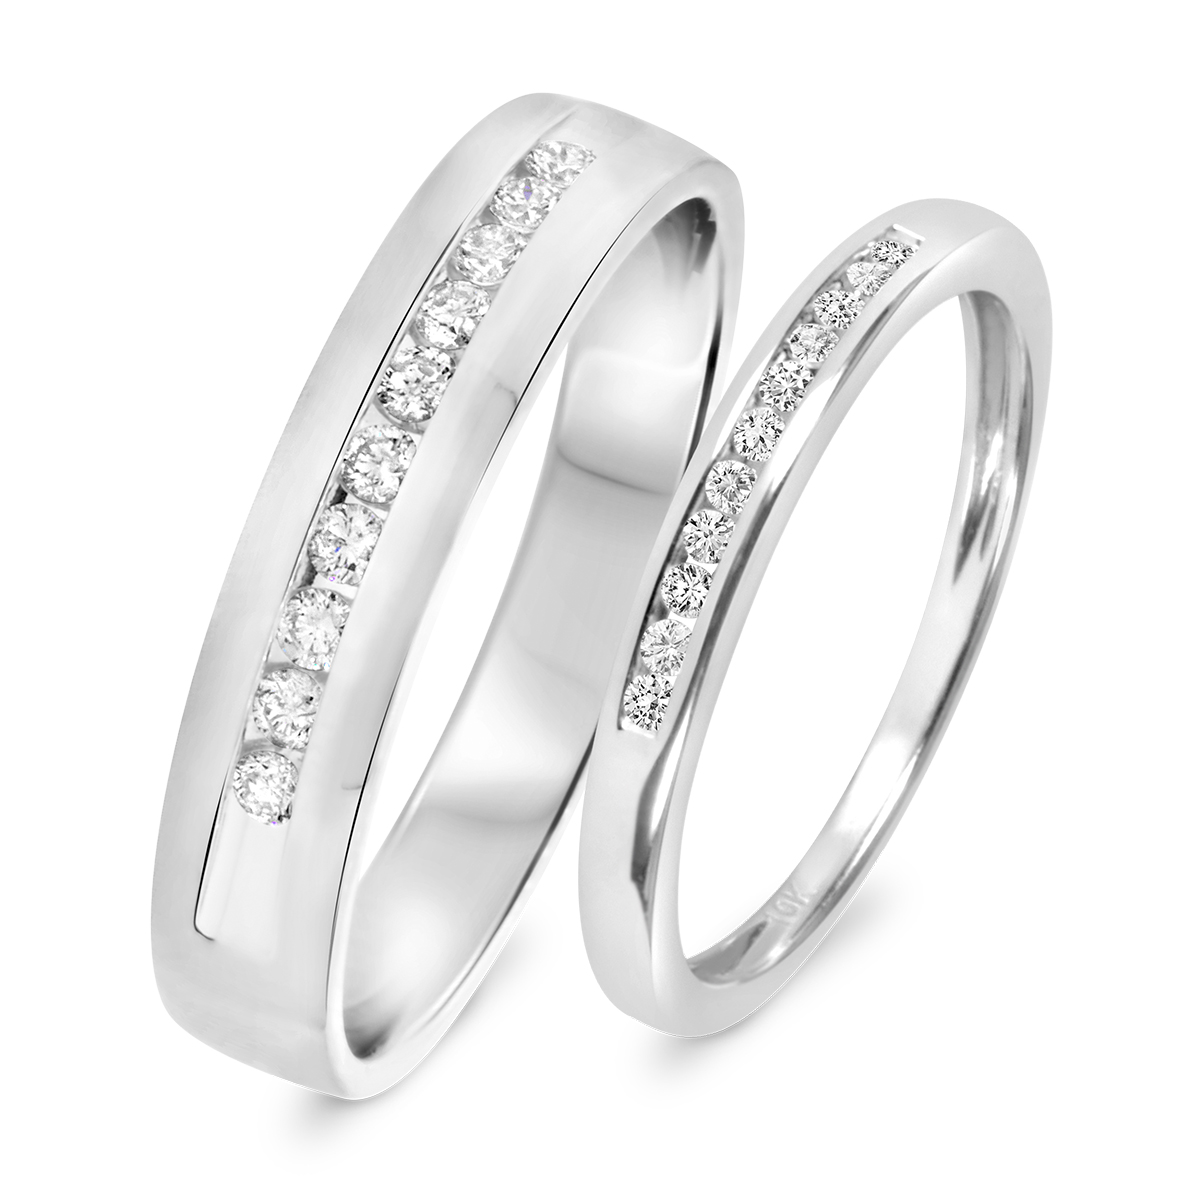 1 3 CT TW Diamond His And Hers Wedding Band Set 14K White Gold